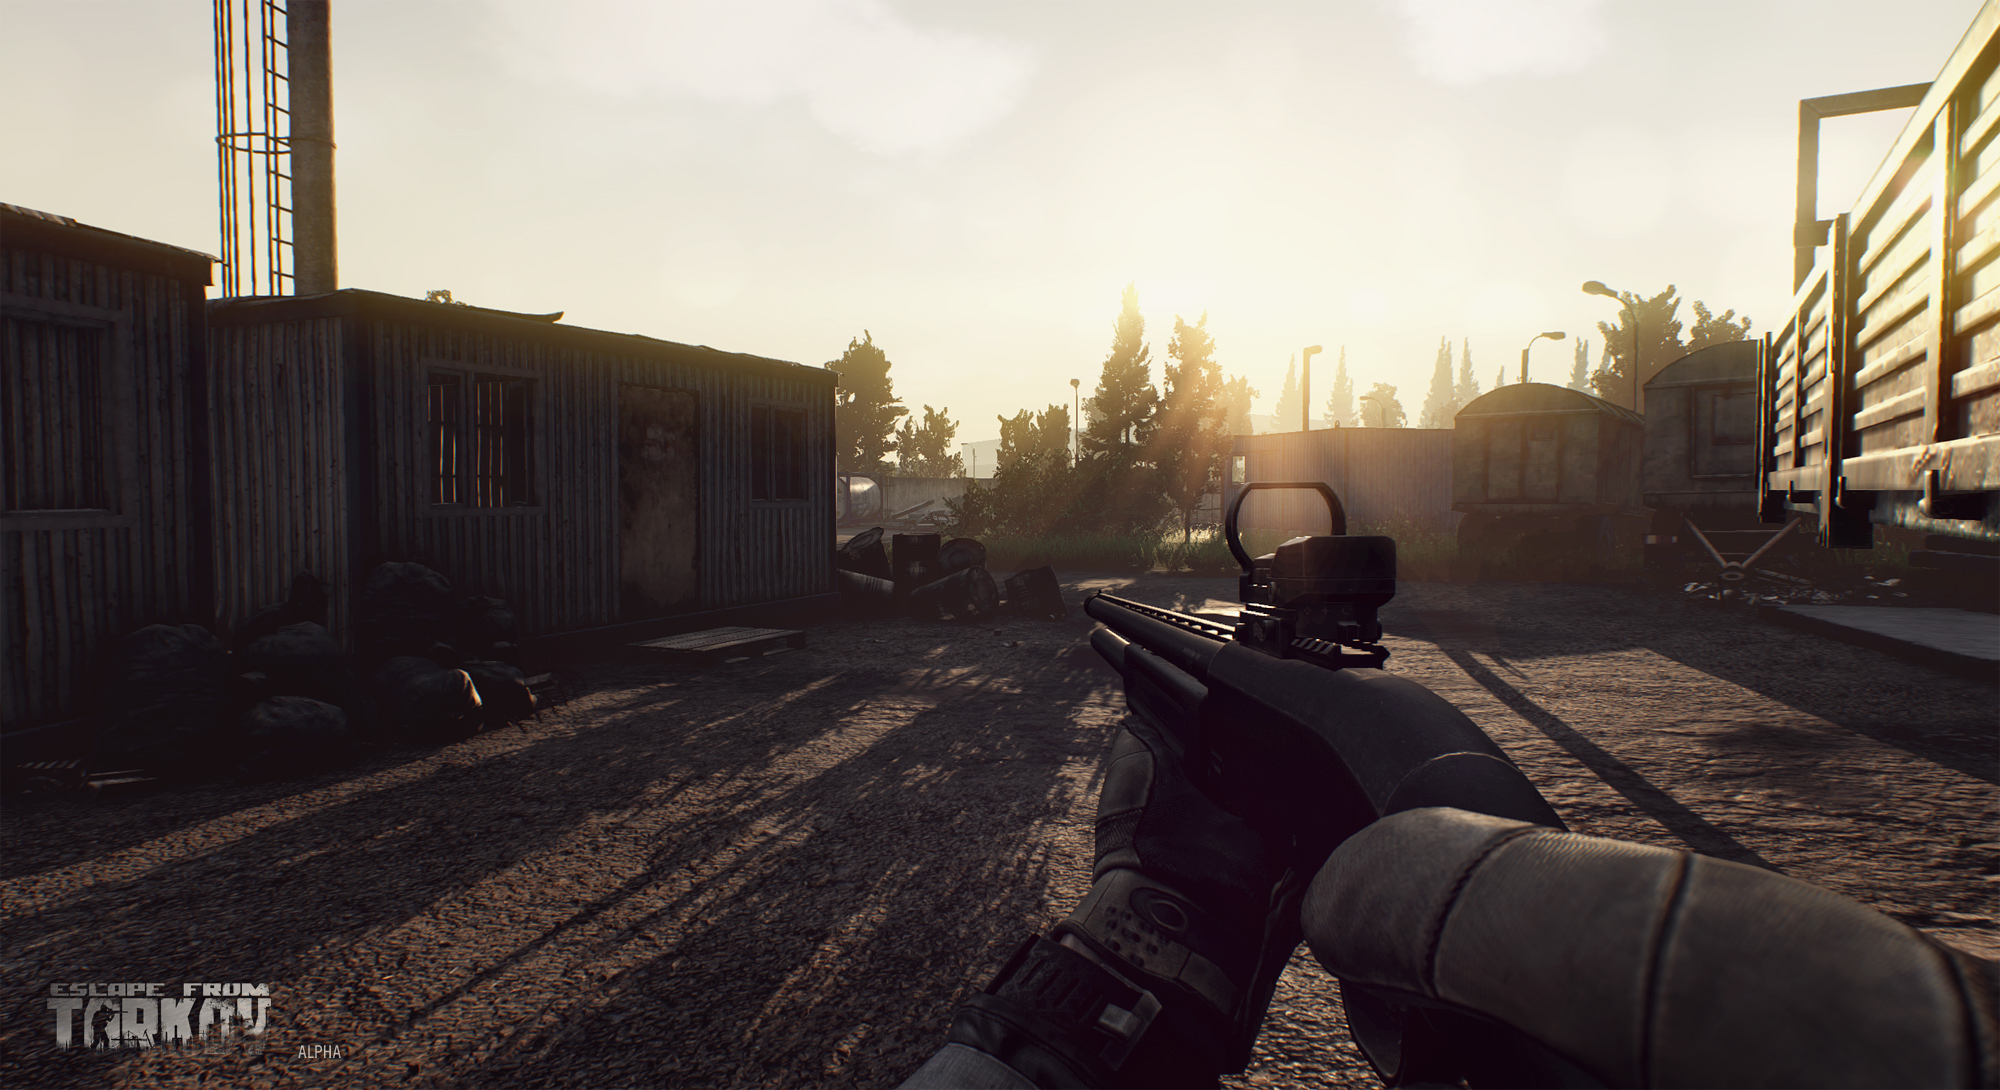 Have a look at Escape from Tarkov's UI in these new screens - VG247